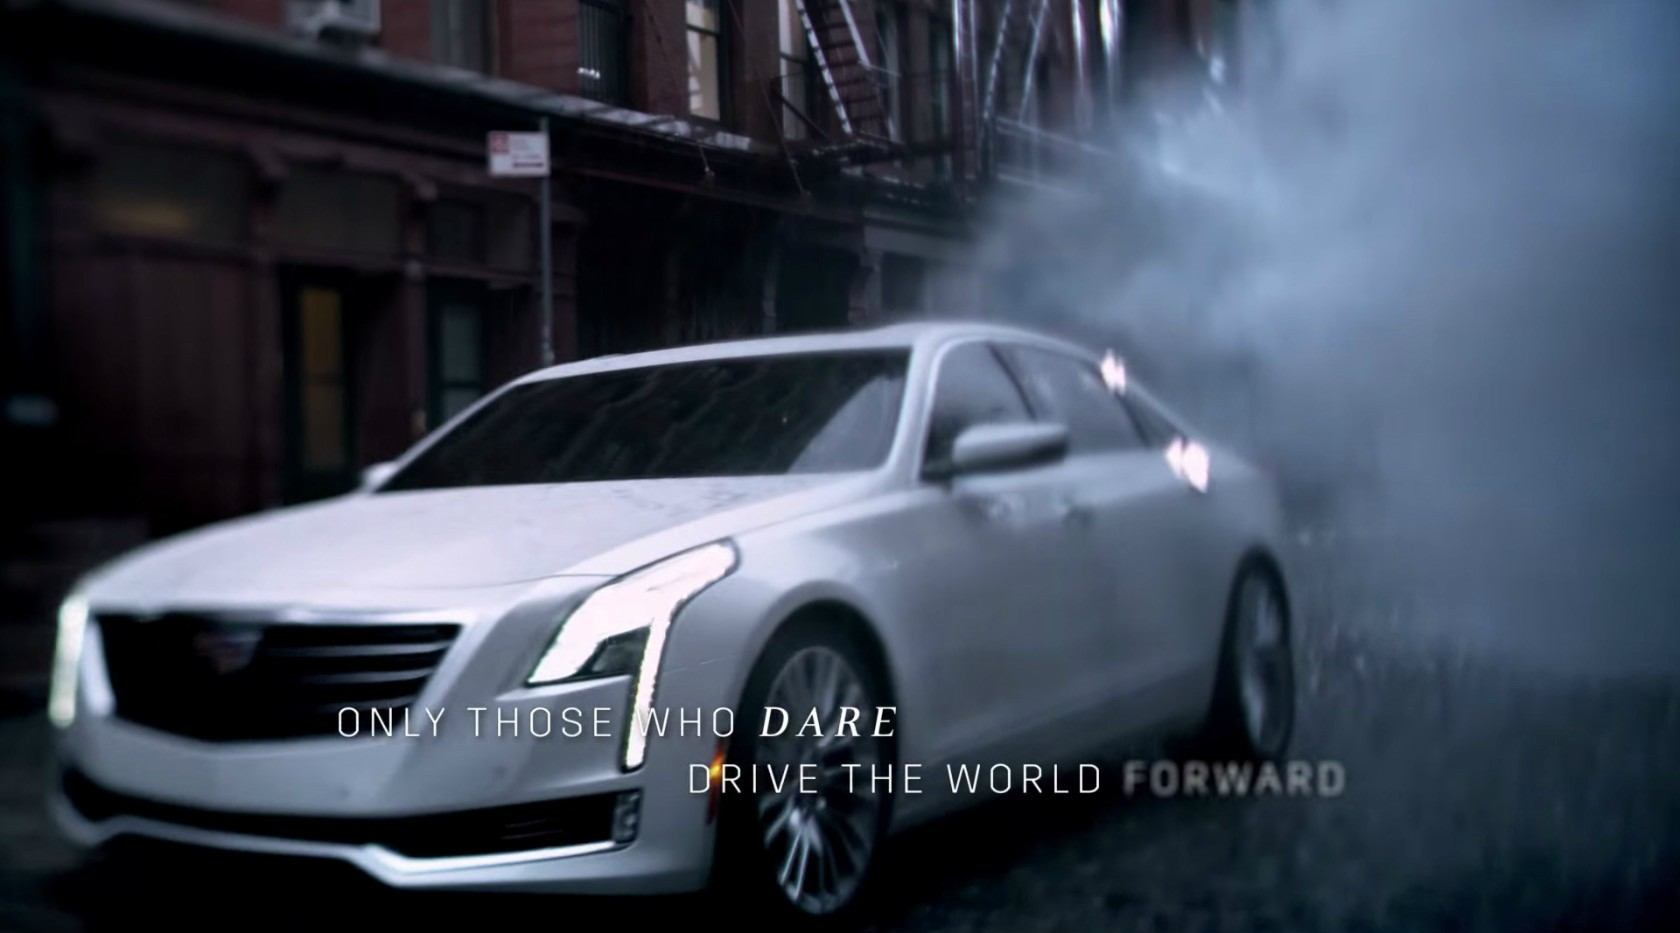 2016-cadillac-ct6-sedan-revealed-in-oscars-ad-wants-us-to-daregently-video-photo-gallery_4